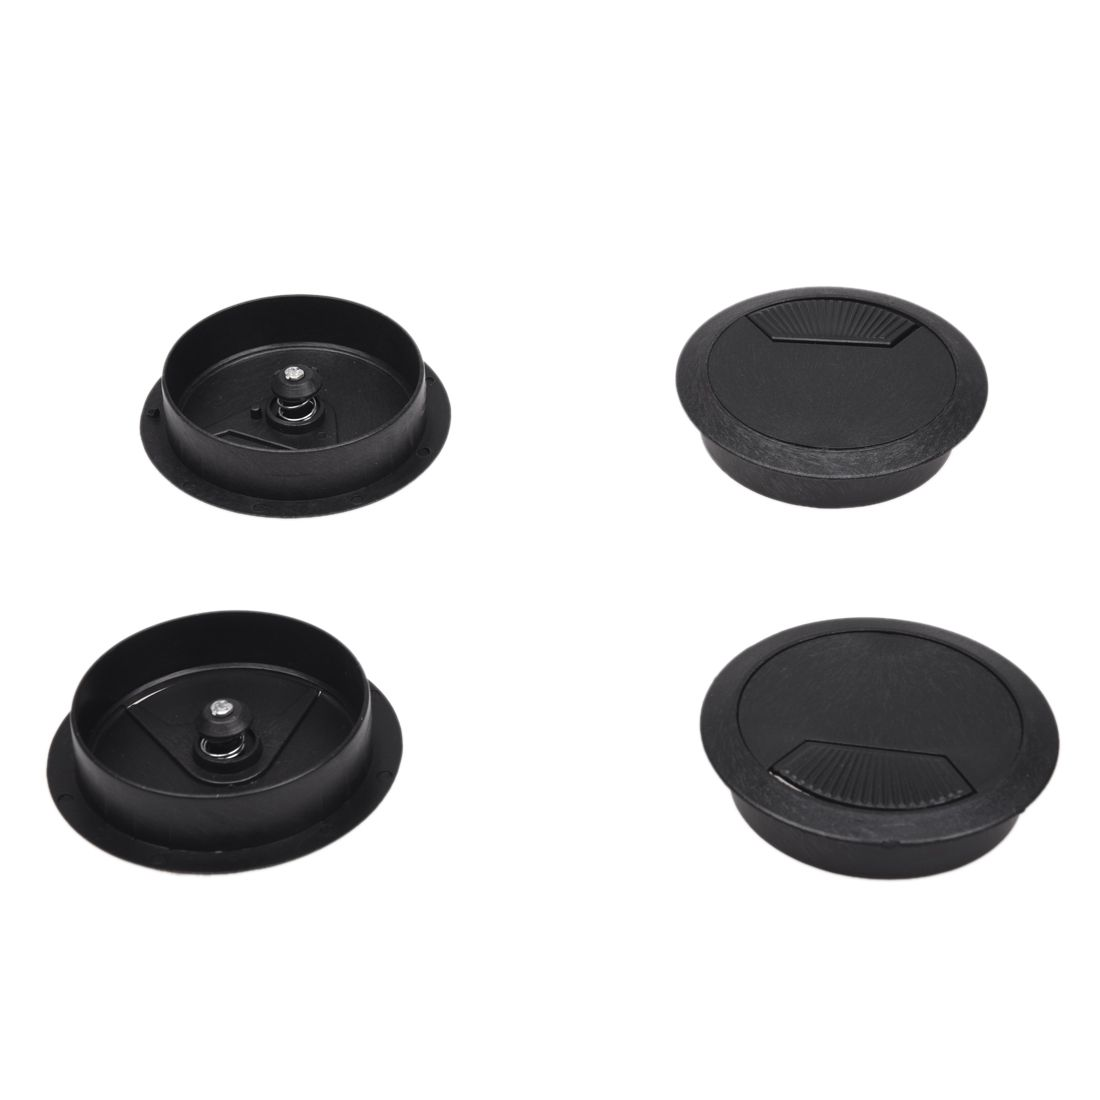 2.3 Dia Round Plastic Desk Computer Grommet Hole Wire Cover Black 4 Pcs rubber round table foot cover protector 8mm inner dia 24 pcs